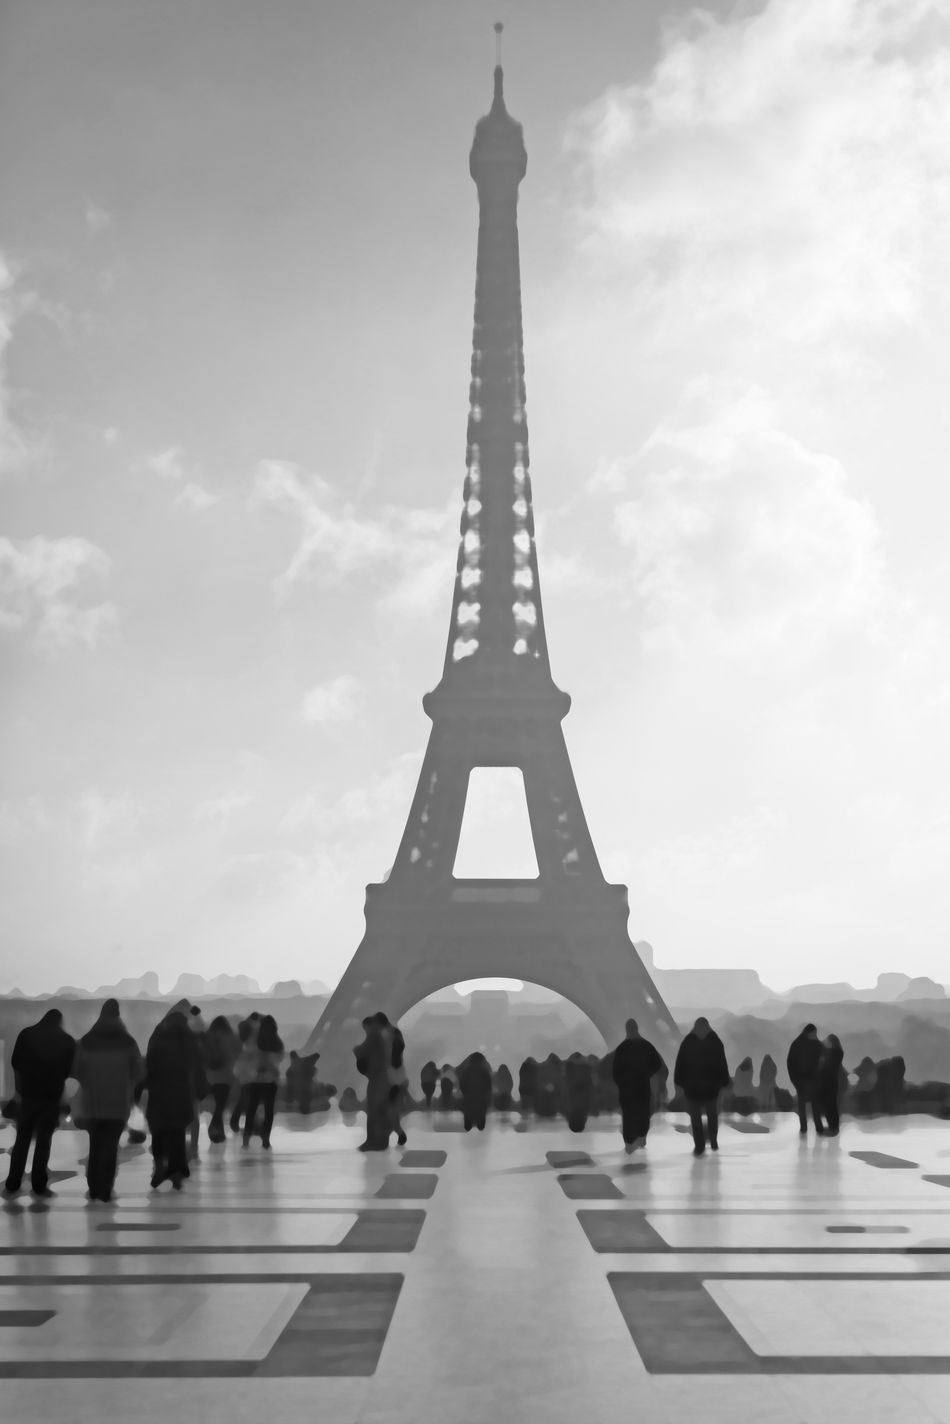 View of Eiffel Tower from Trocadero Architecture Black And White Capital City Day Eiffel Eiffel Tower France Large Group Of People Original Outdoors Painting Style Paris Picture Sky Stylized Tourist Tower Travel Destinations Trocadero Unique View